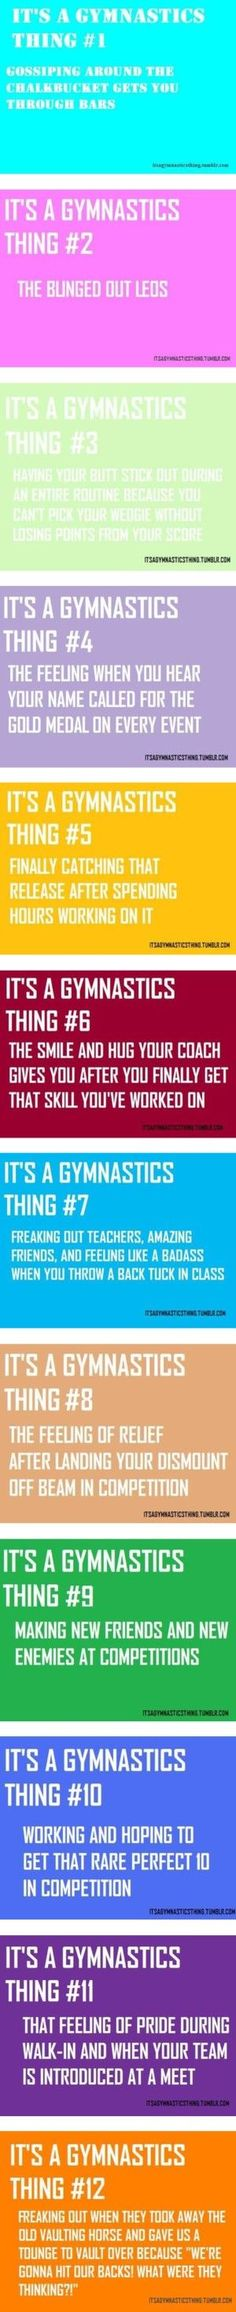 It's A Gymnastics Thing!! Part 1 by ilovemychicas on Polyvore featuring gymnastics, sport, sports, text, phrase, quotes, saying, women's fashion and halley